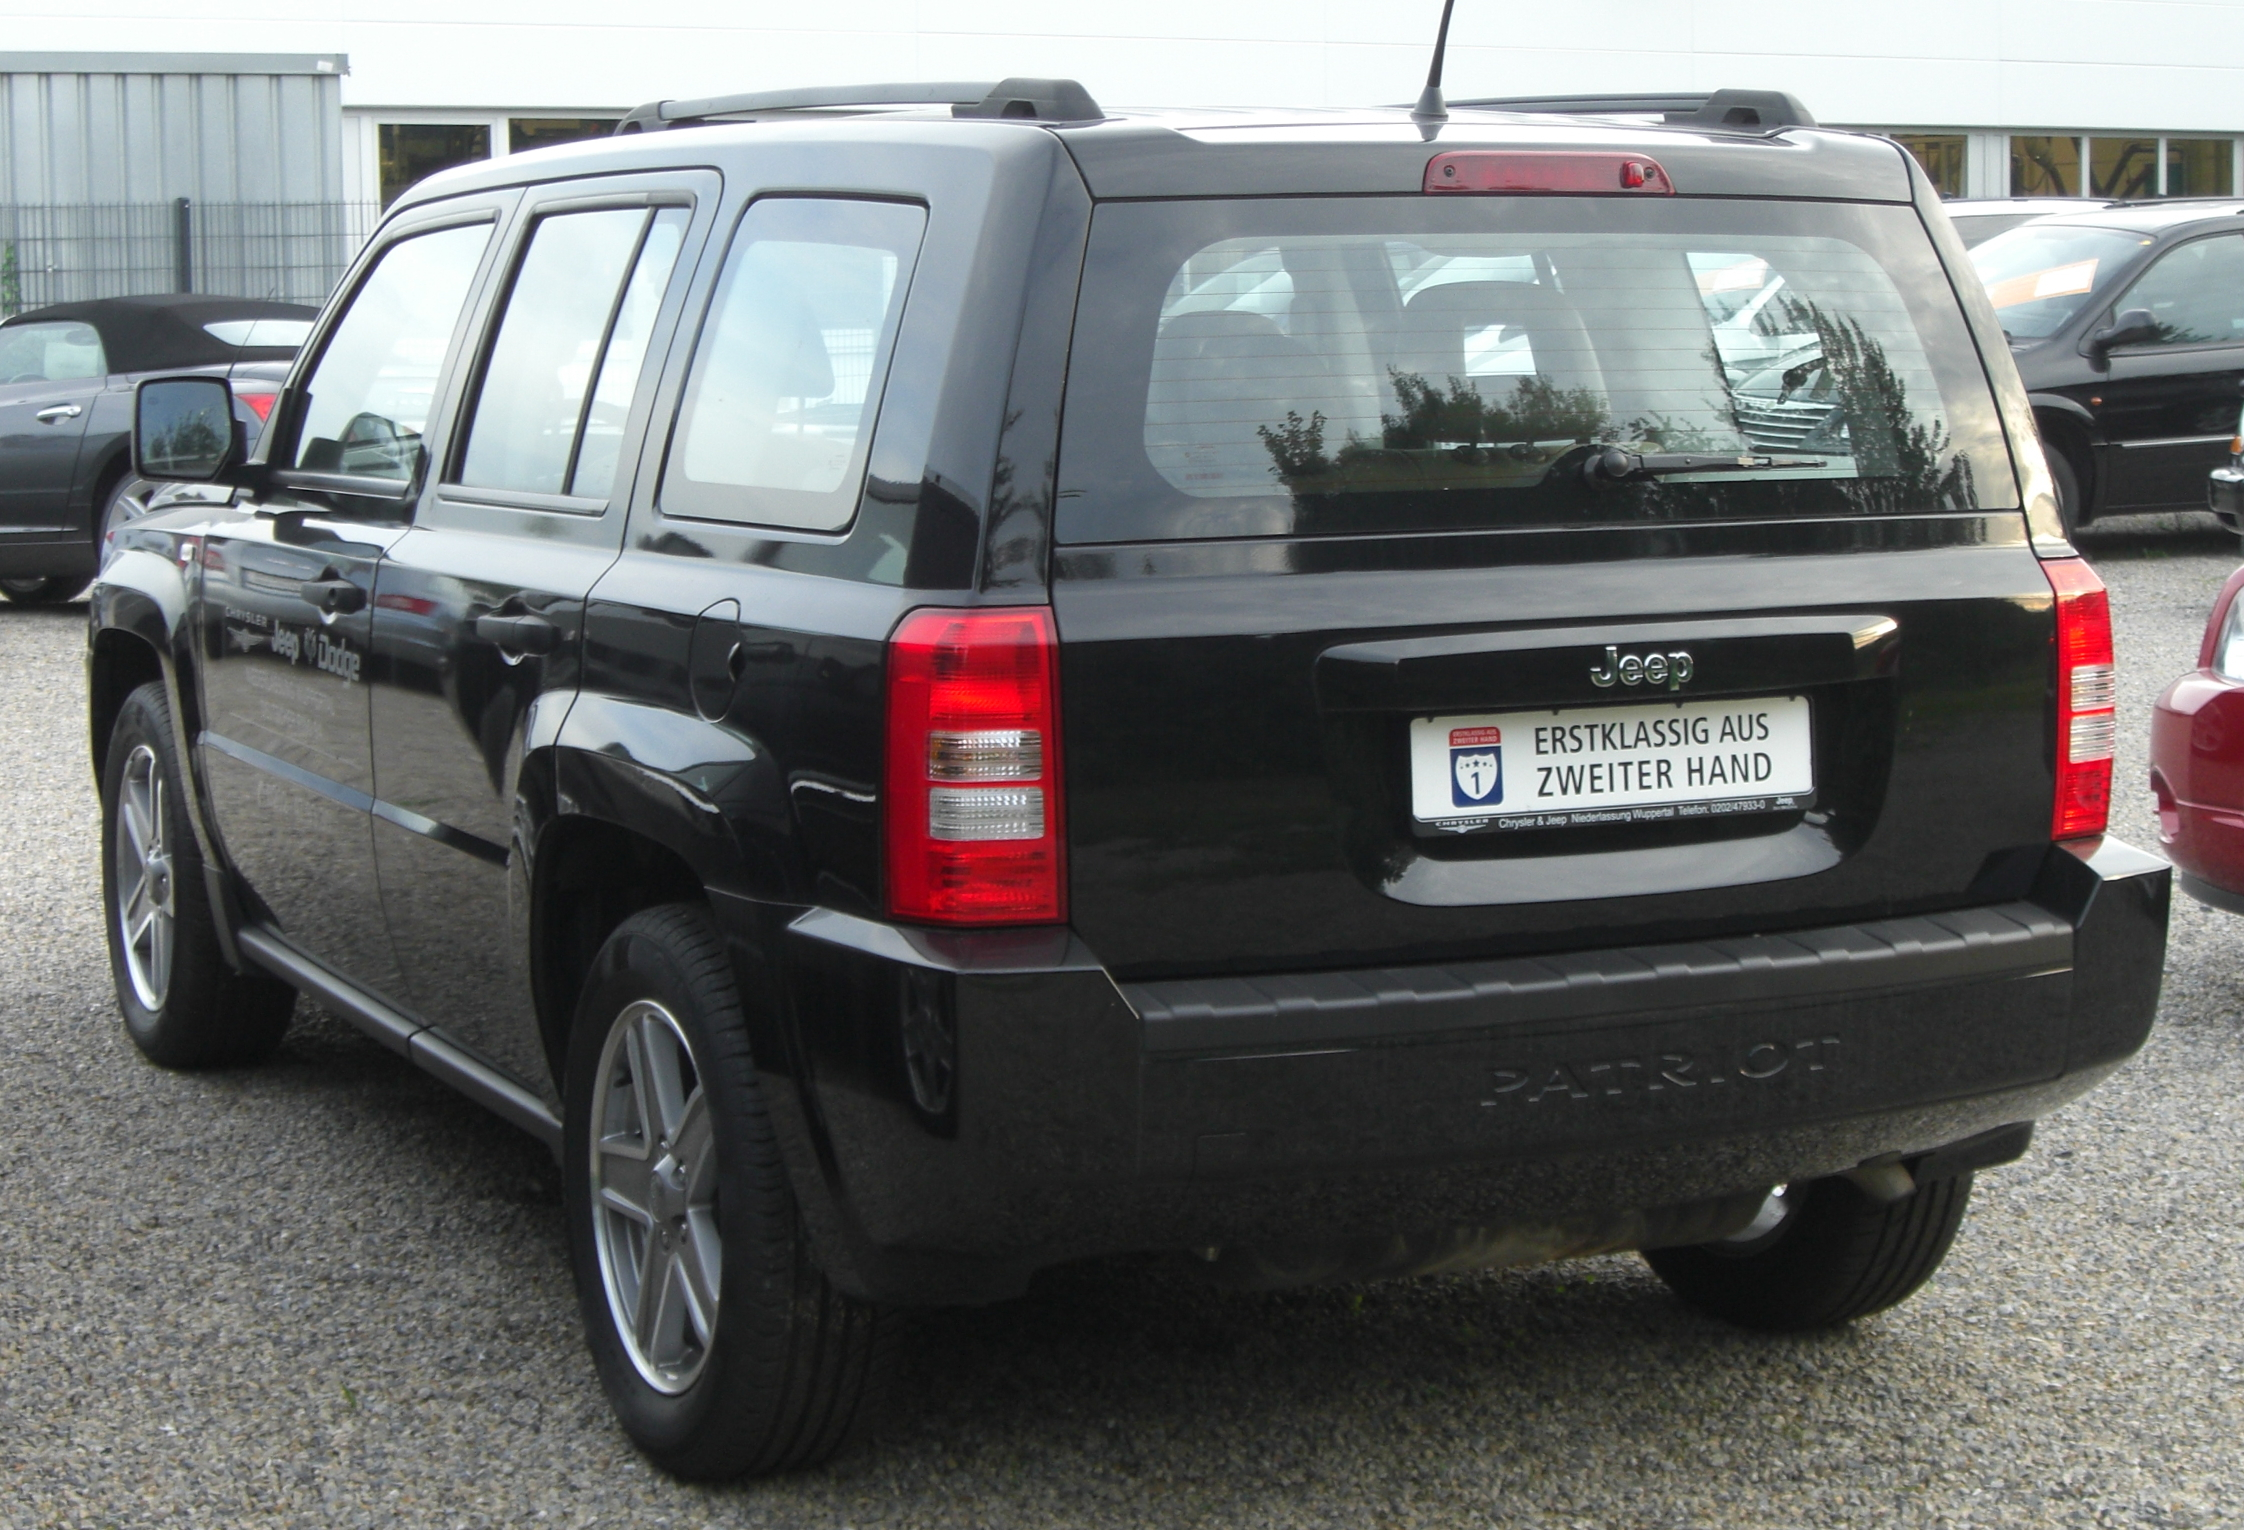 2015 Jeep Grand Cherokee >> File:Jeep Patriot 2.0 CRD rear.jpg - Wikimedia Commons